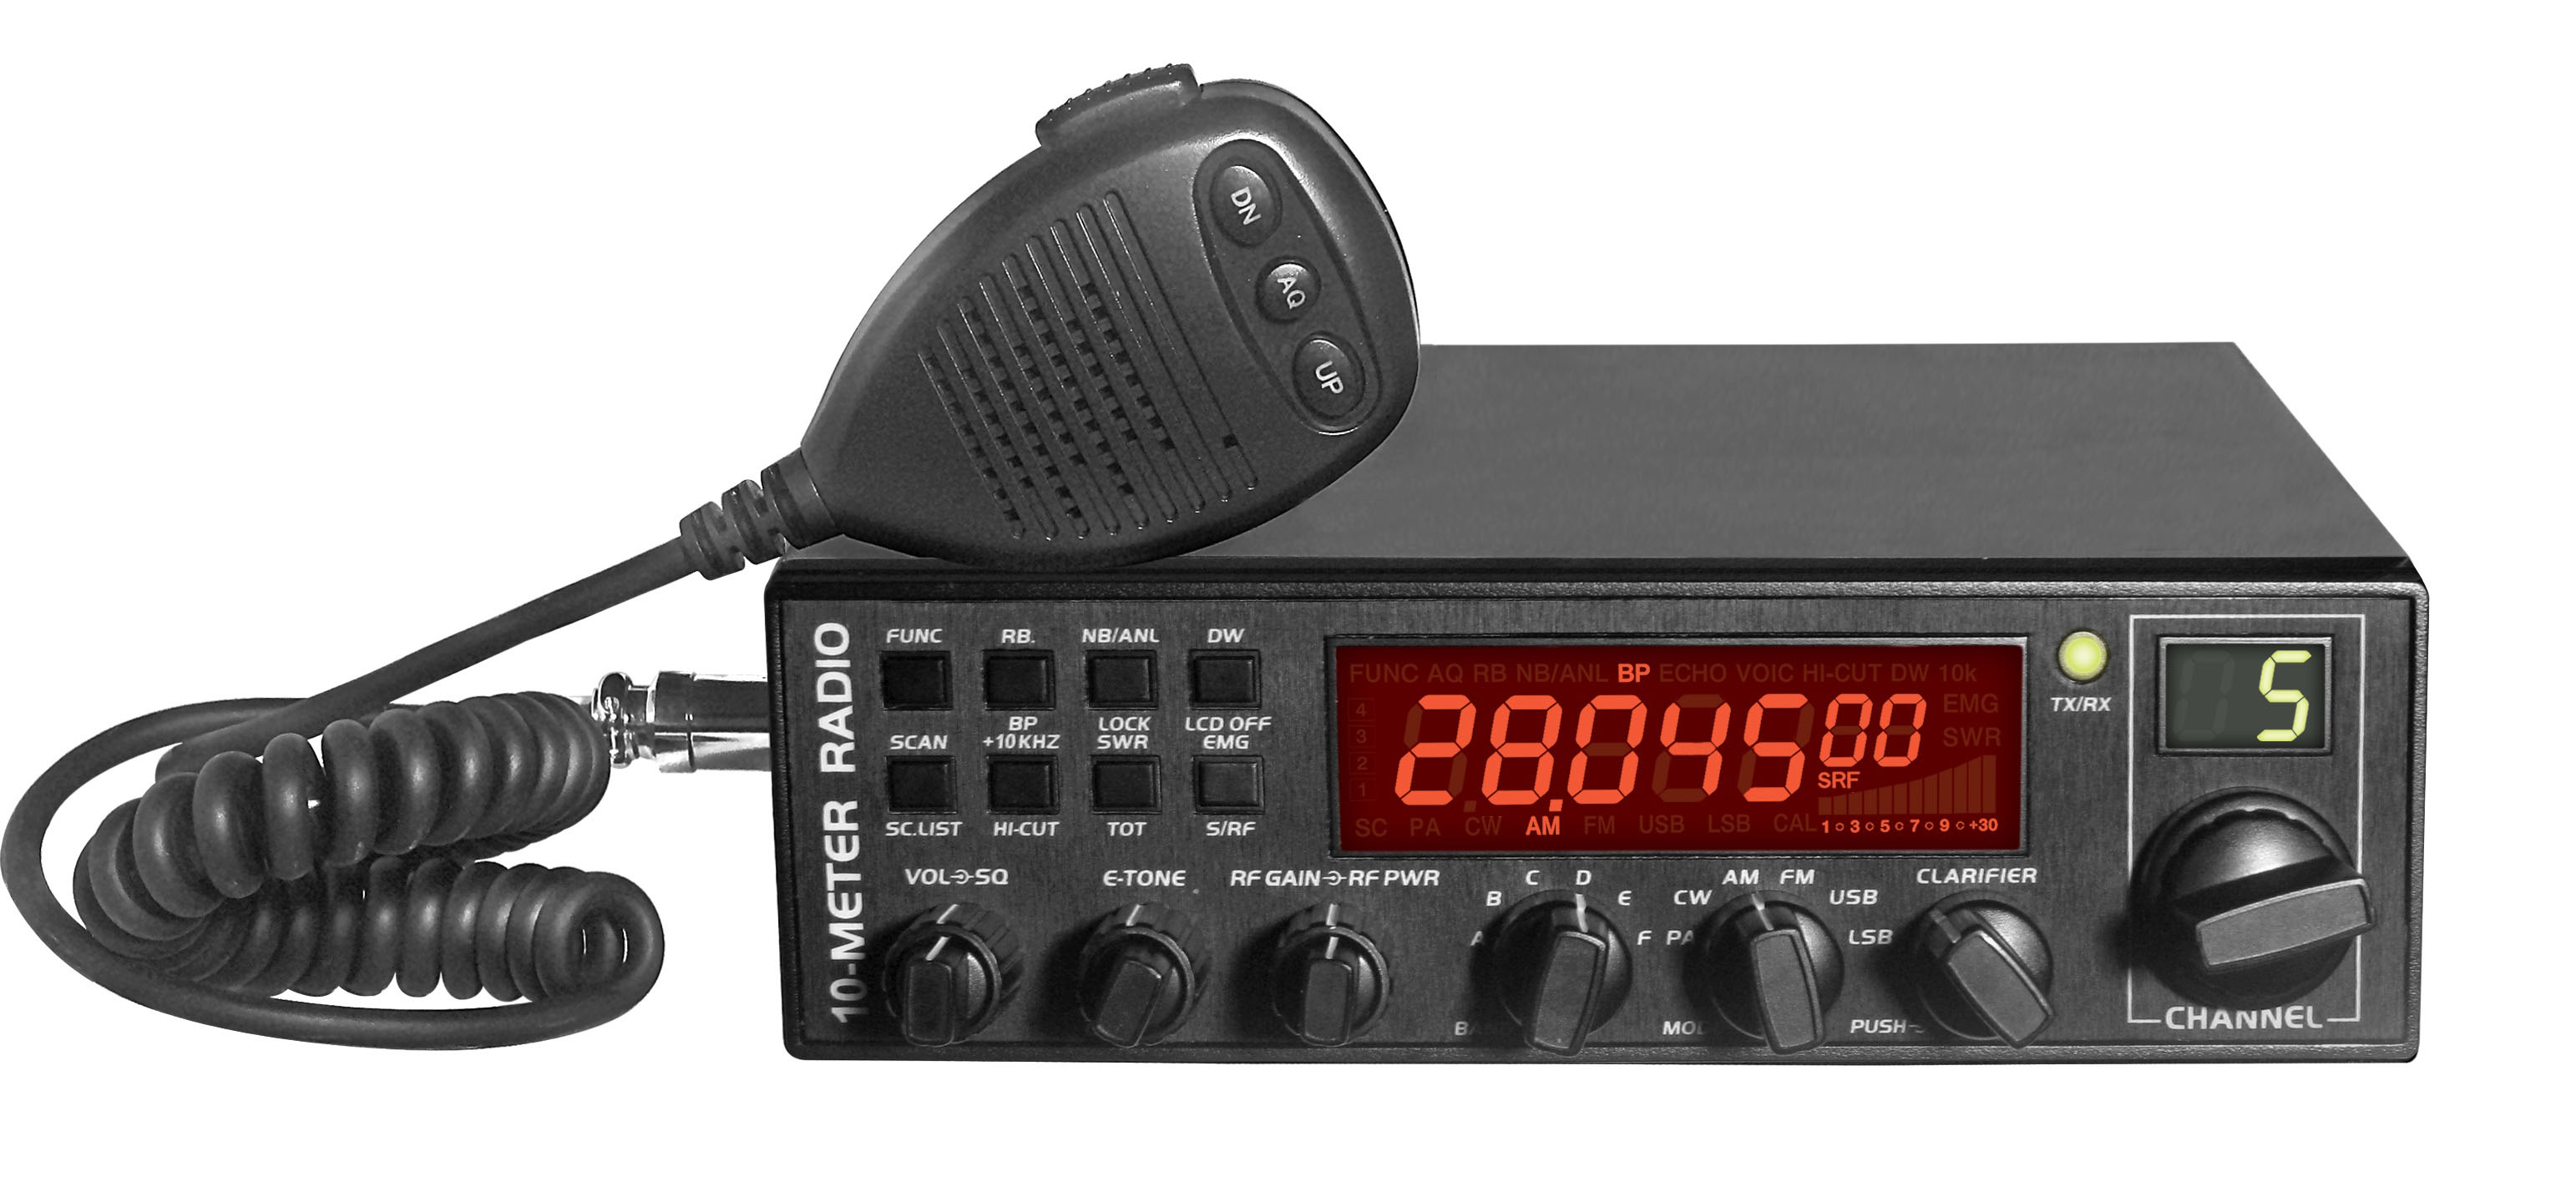 ANYTONE AT-5555 equipo 10m ham radio